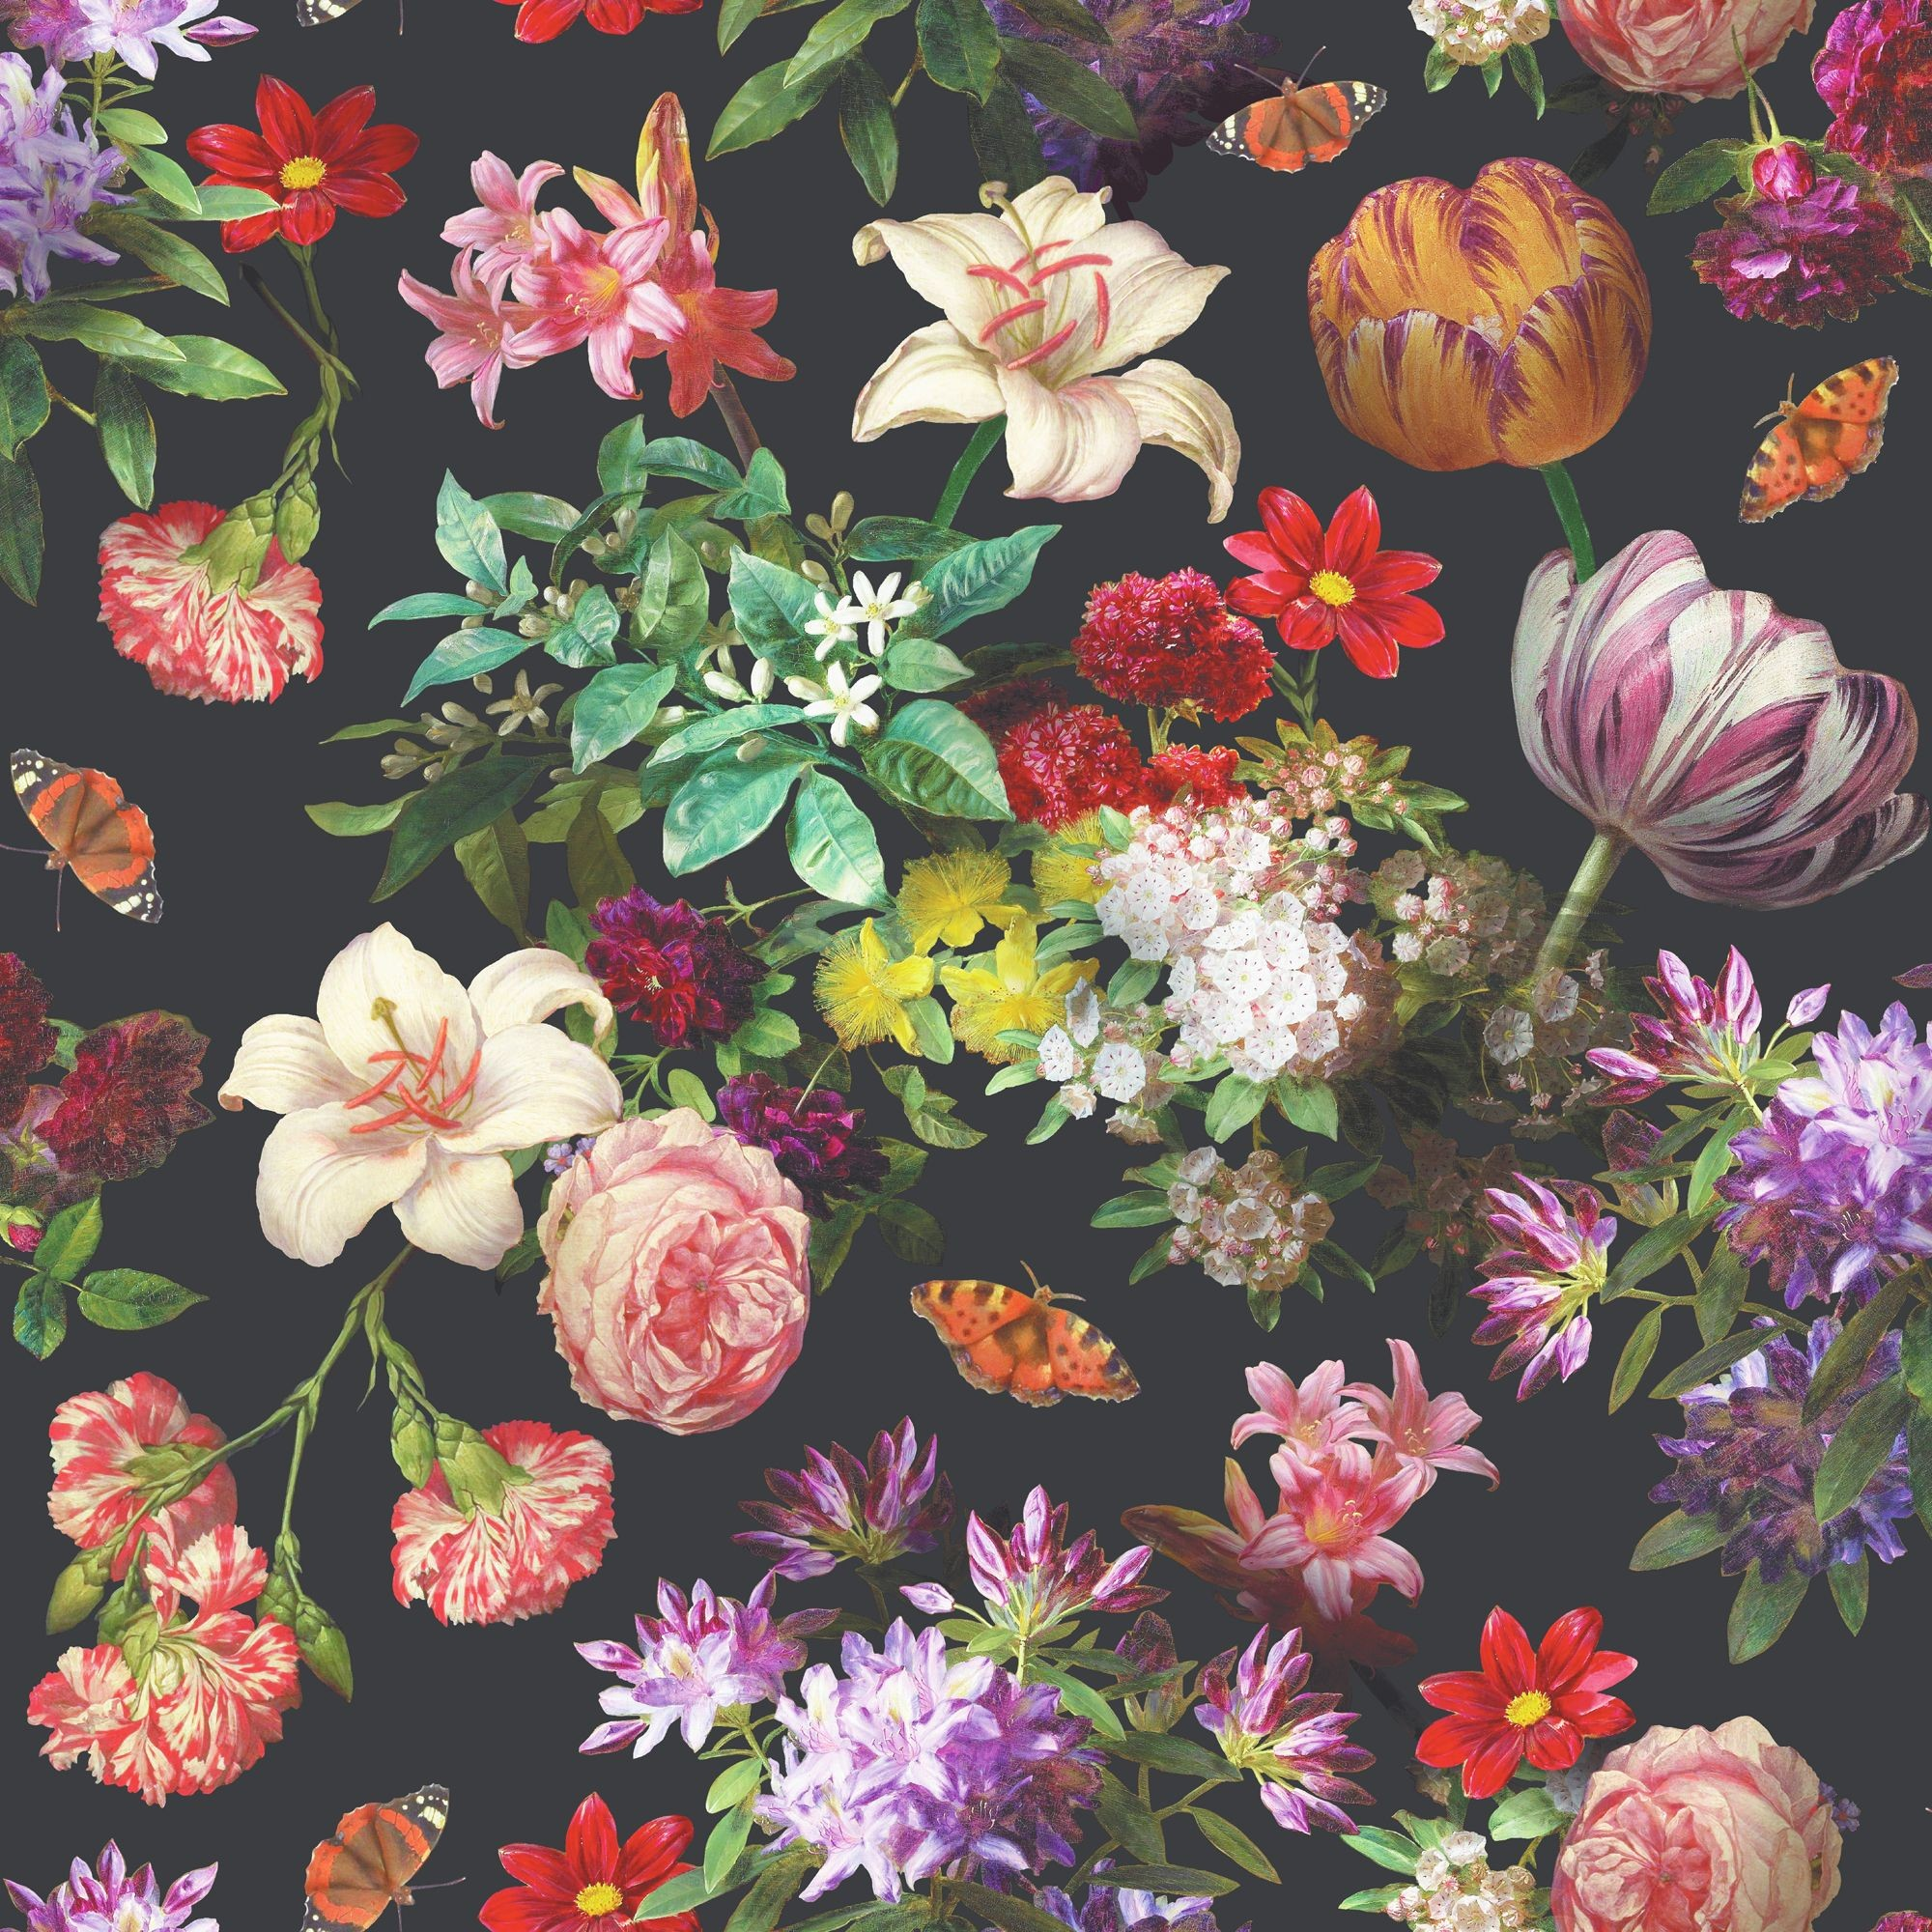 Vintage Floral Wallpaper ·① Download Free Cool High